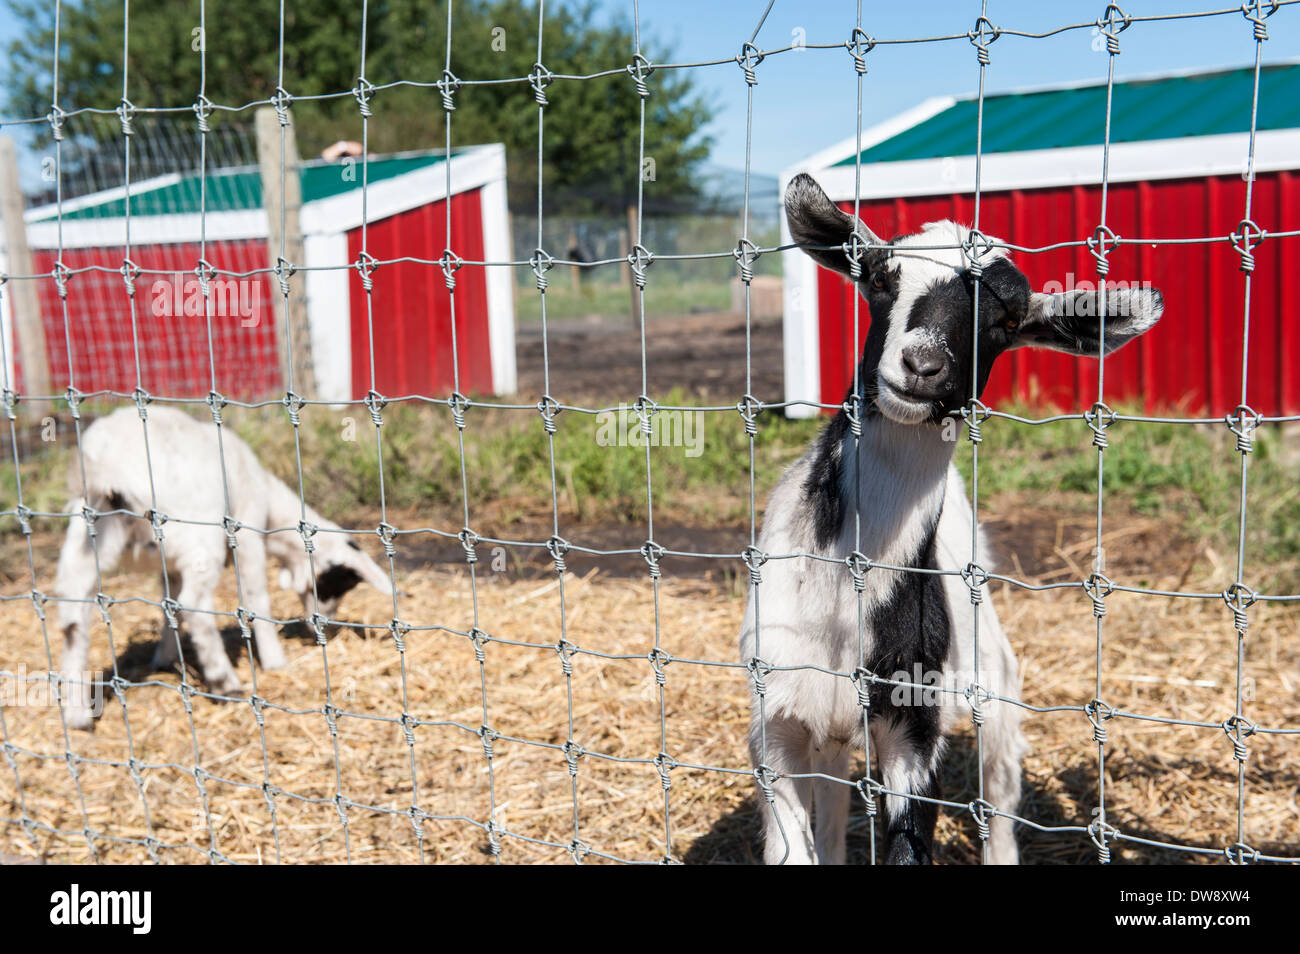 Black and white goat looking through a fence in goat pen Stock Photo